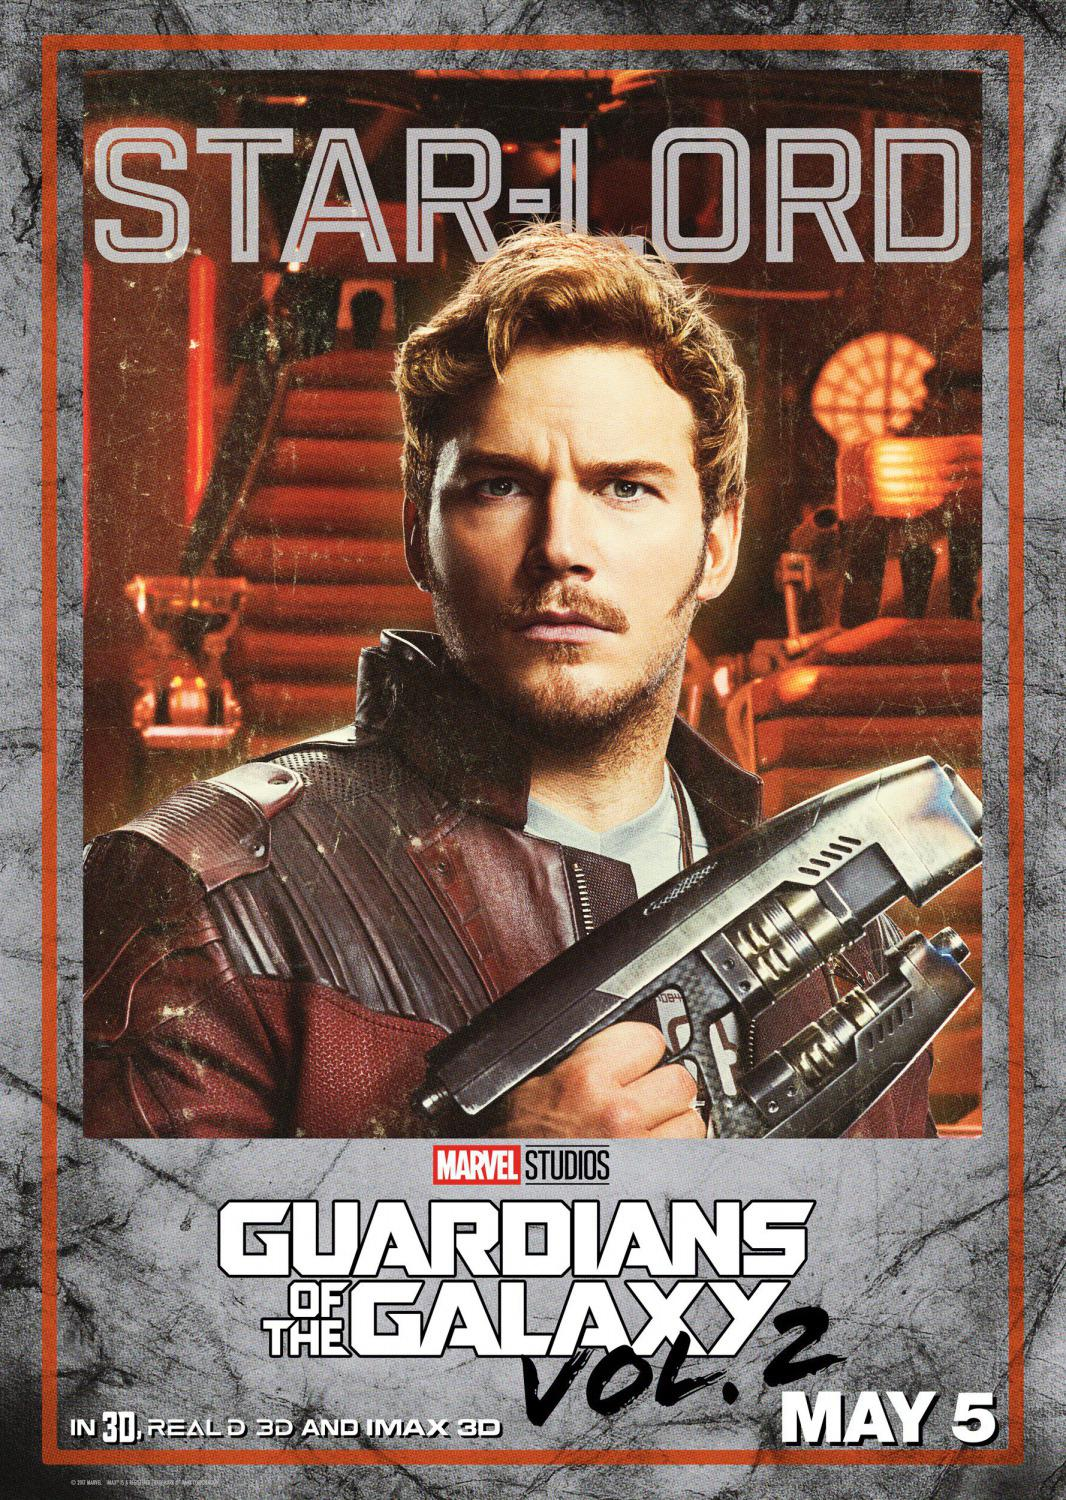 Guardians of the Galaxy vol two - Guardiani della Galassia 2 - Star Lord